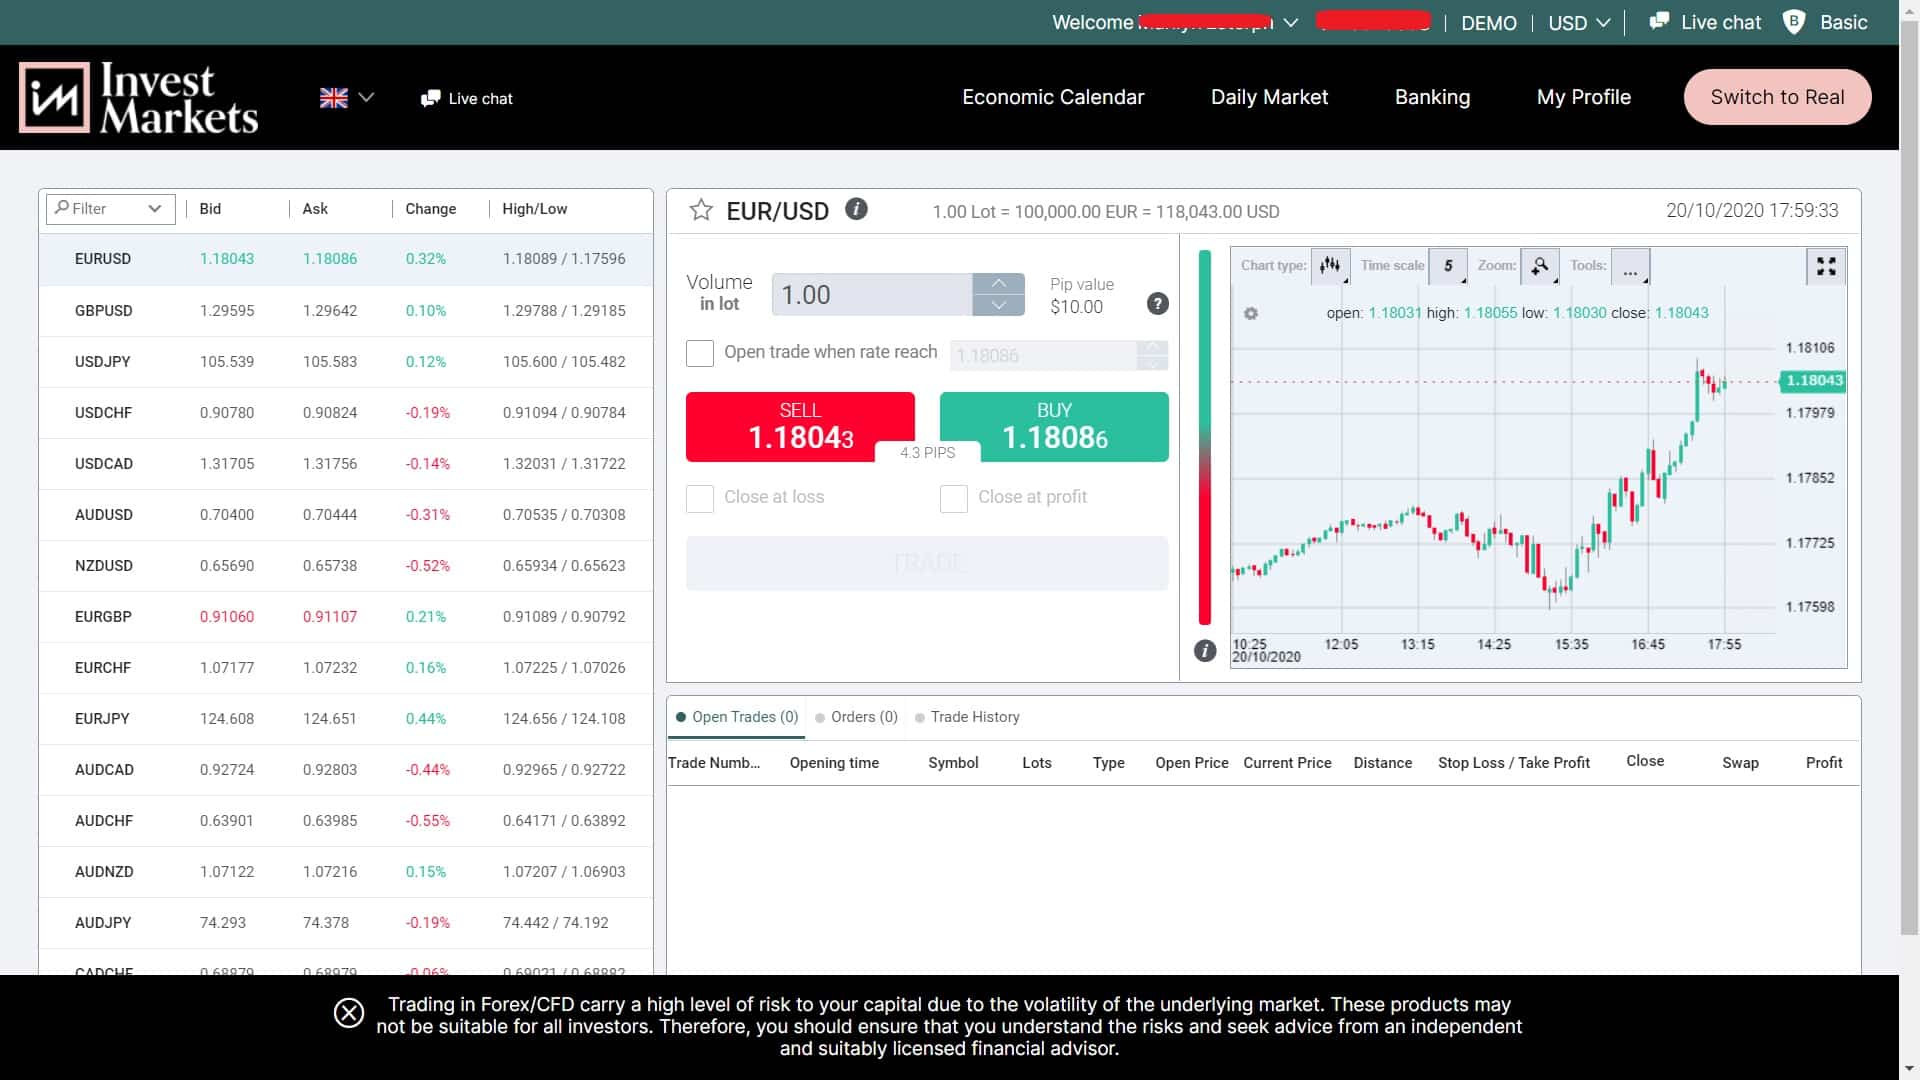 InvestMarkets demo account